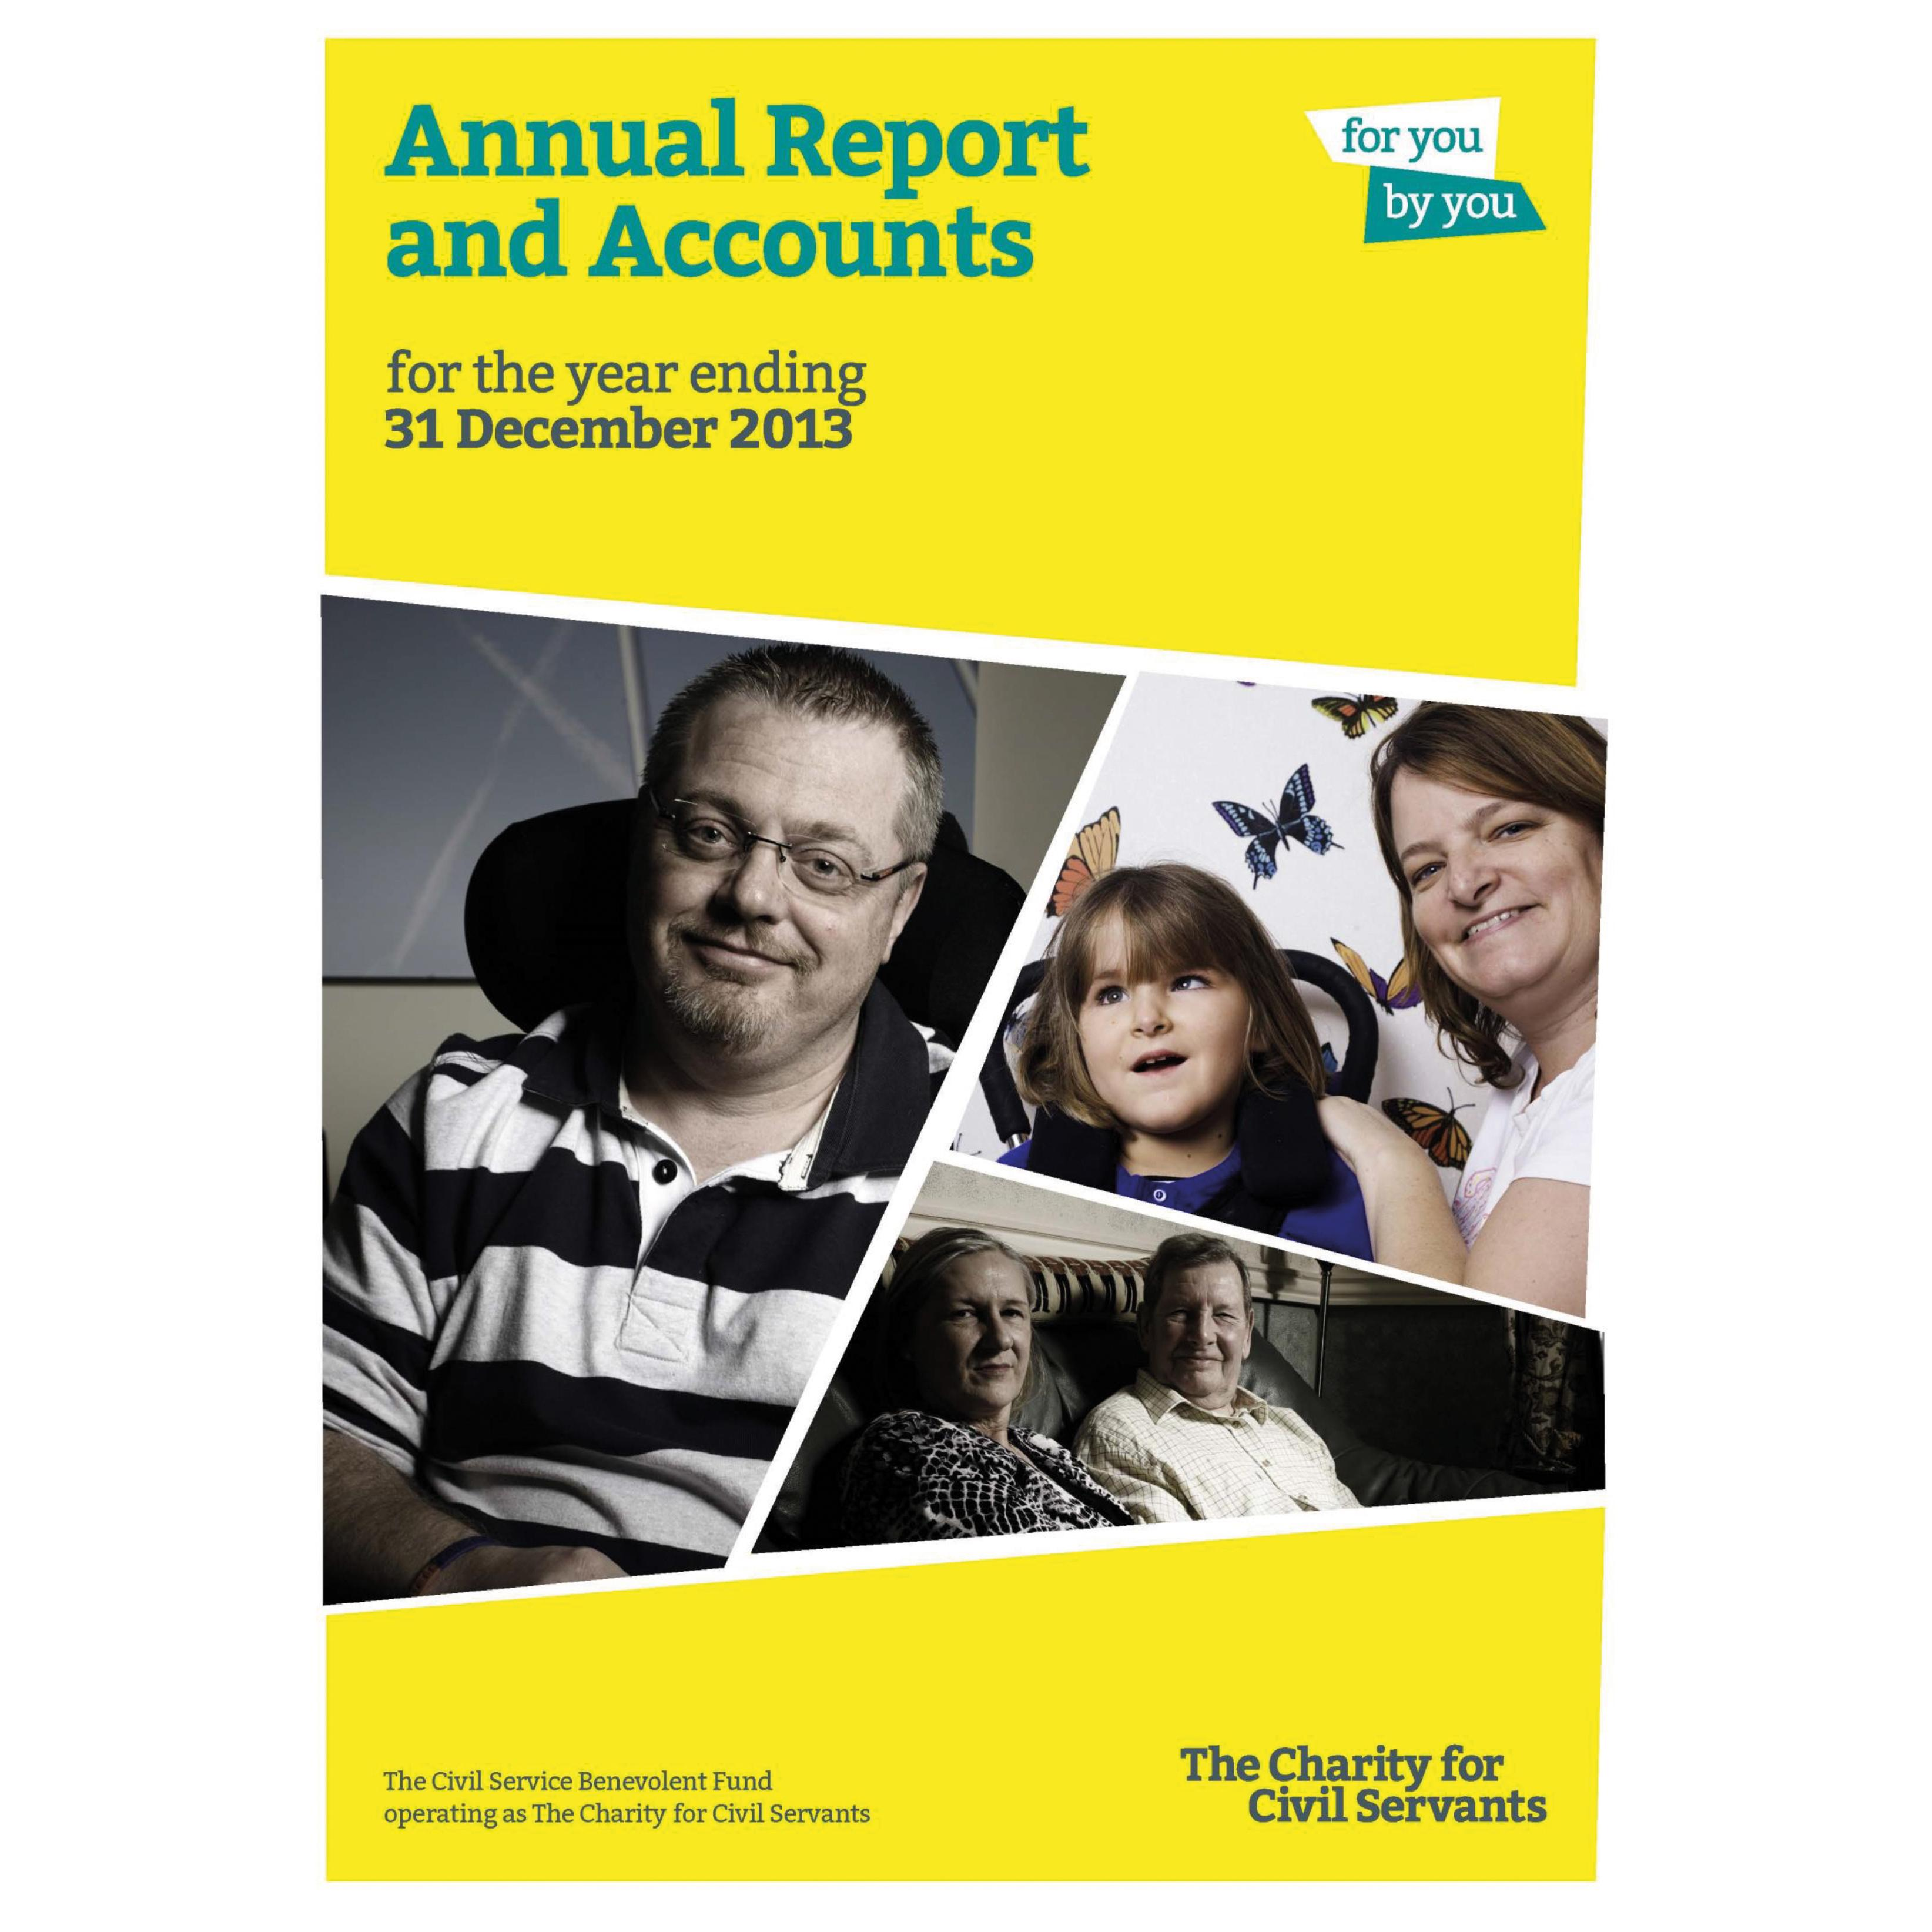 Annual Report and Accounts 2013